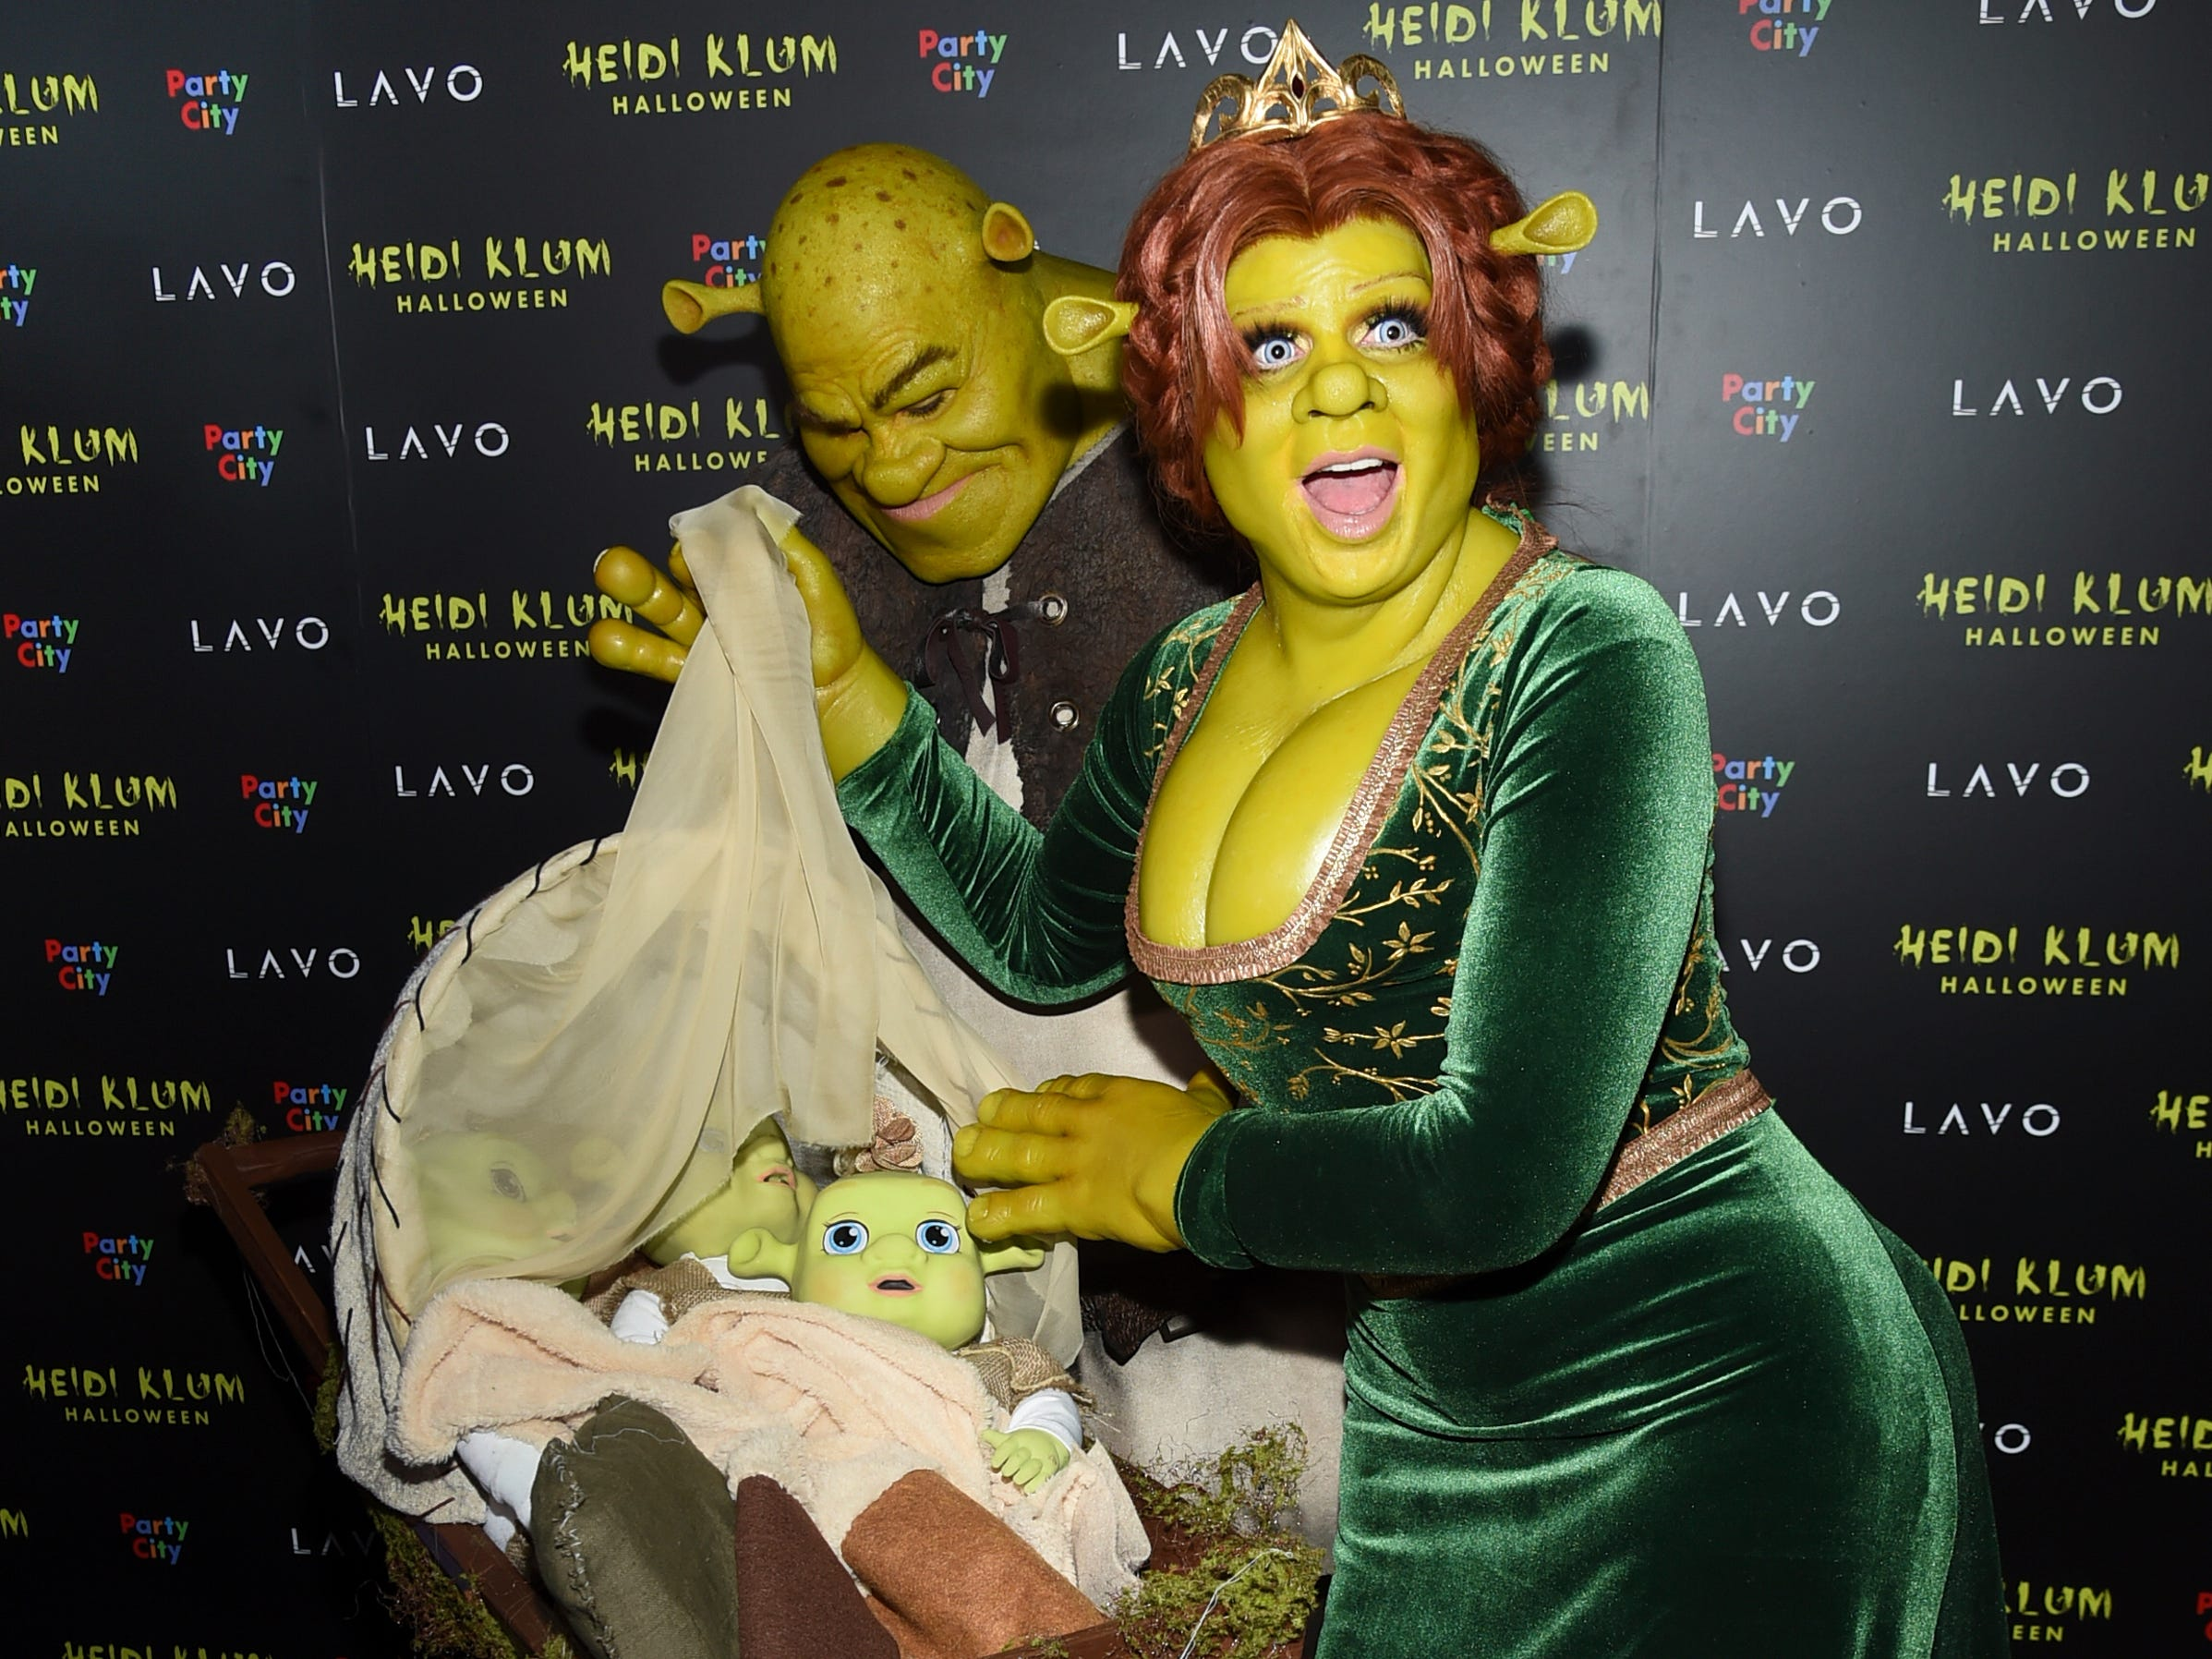 Model and television personality Heidi Klum, right, and boyfriend Tom Kaulitz dress as Shrek and Princess Fiona as they arrive at her 19th annual Halloween party at Lavo New York on Wednesday, Oct. 31, 2018.